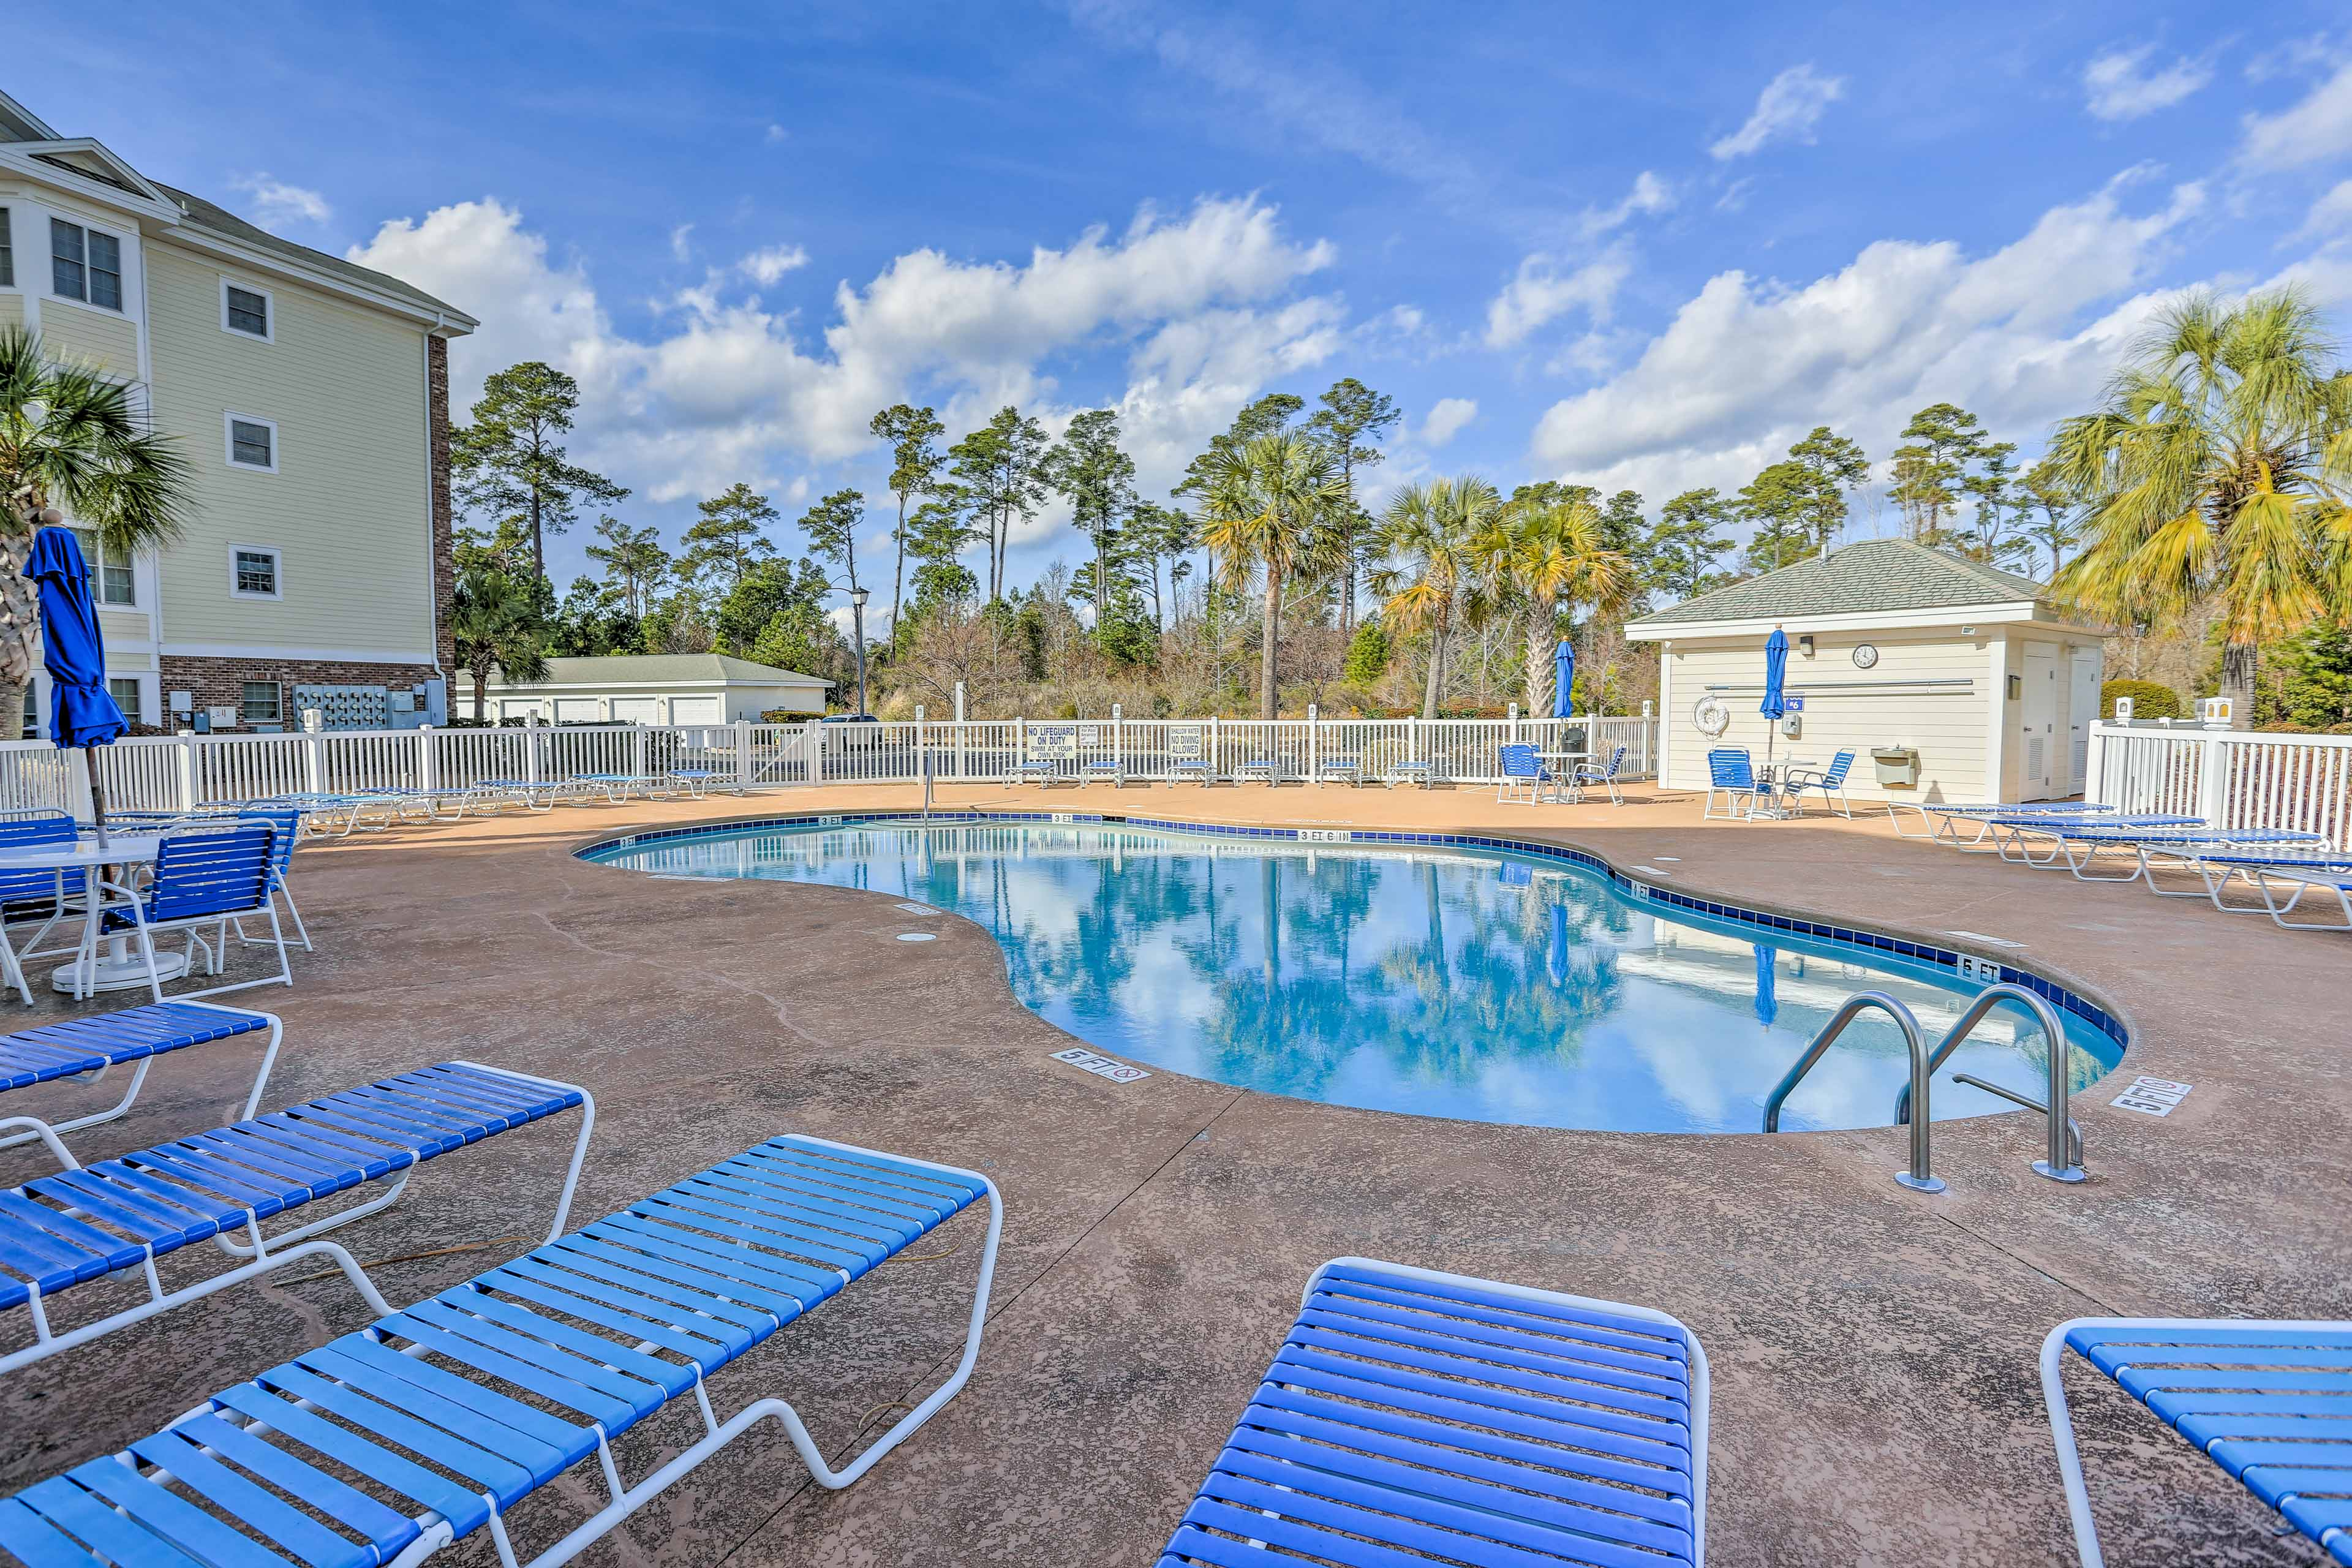 Dive into relaxation in the community pool!